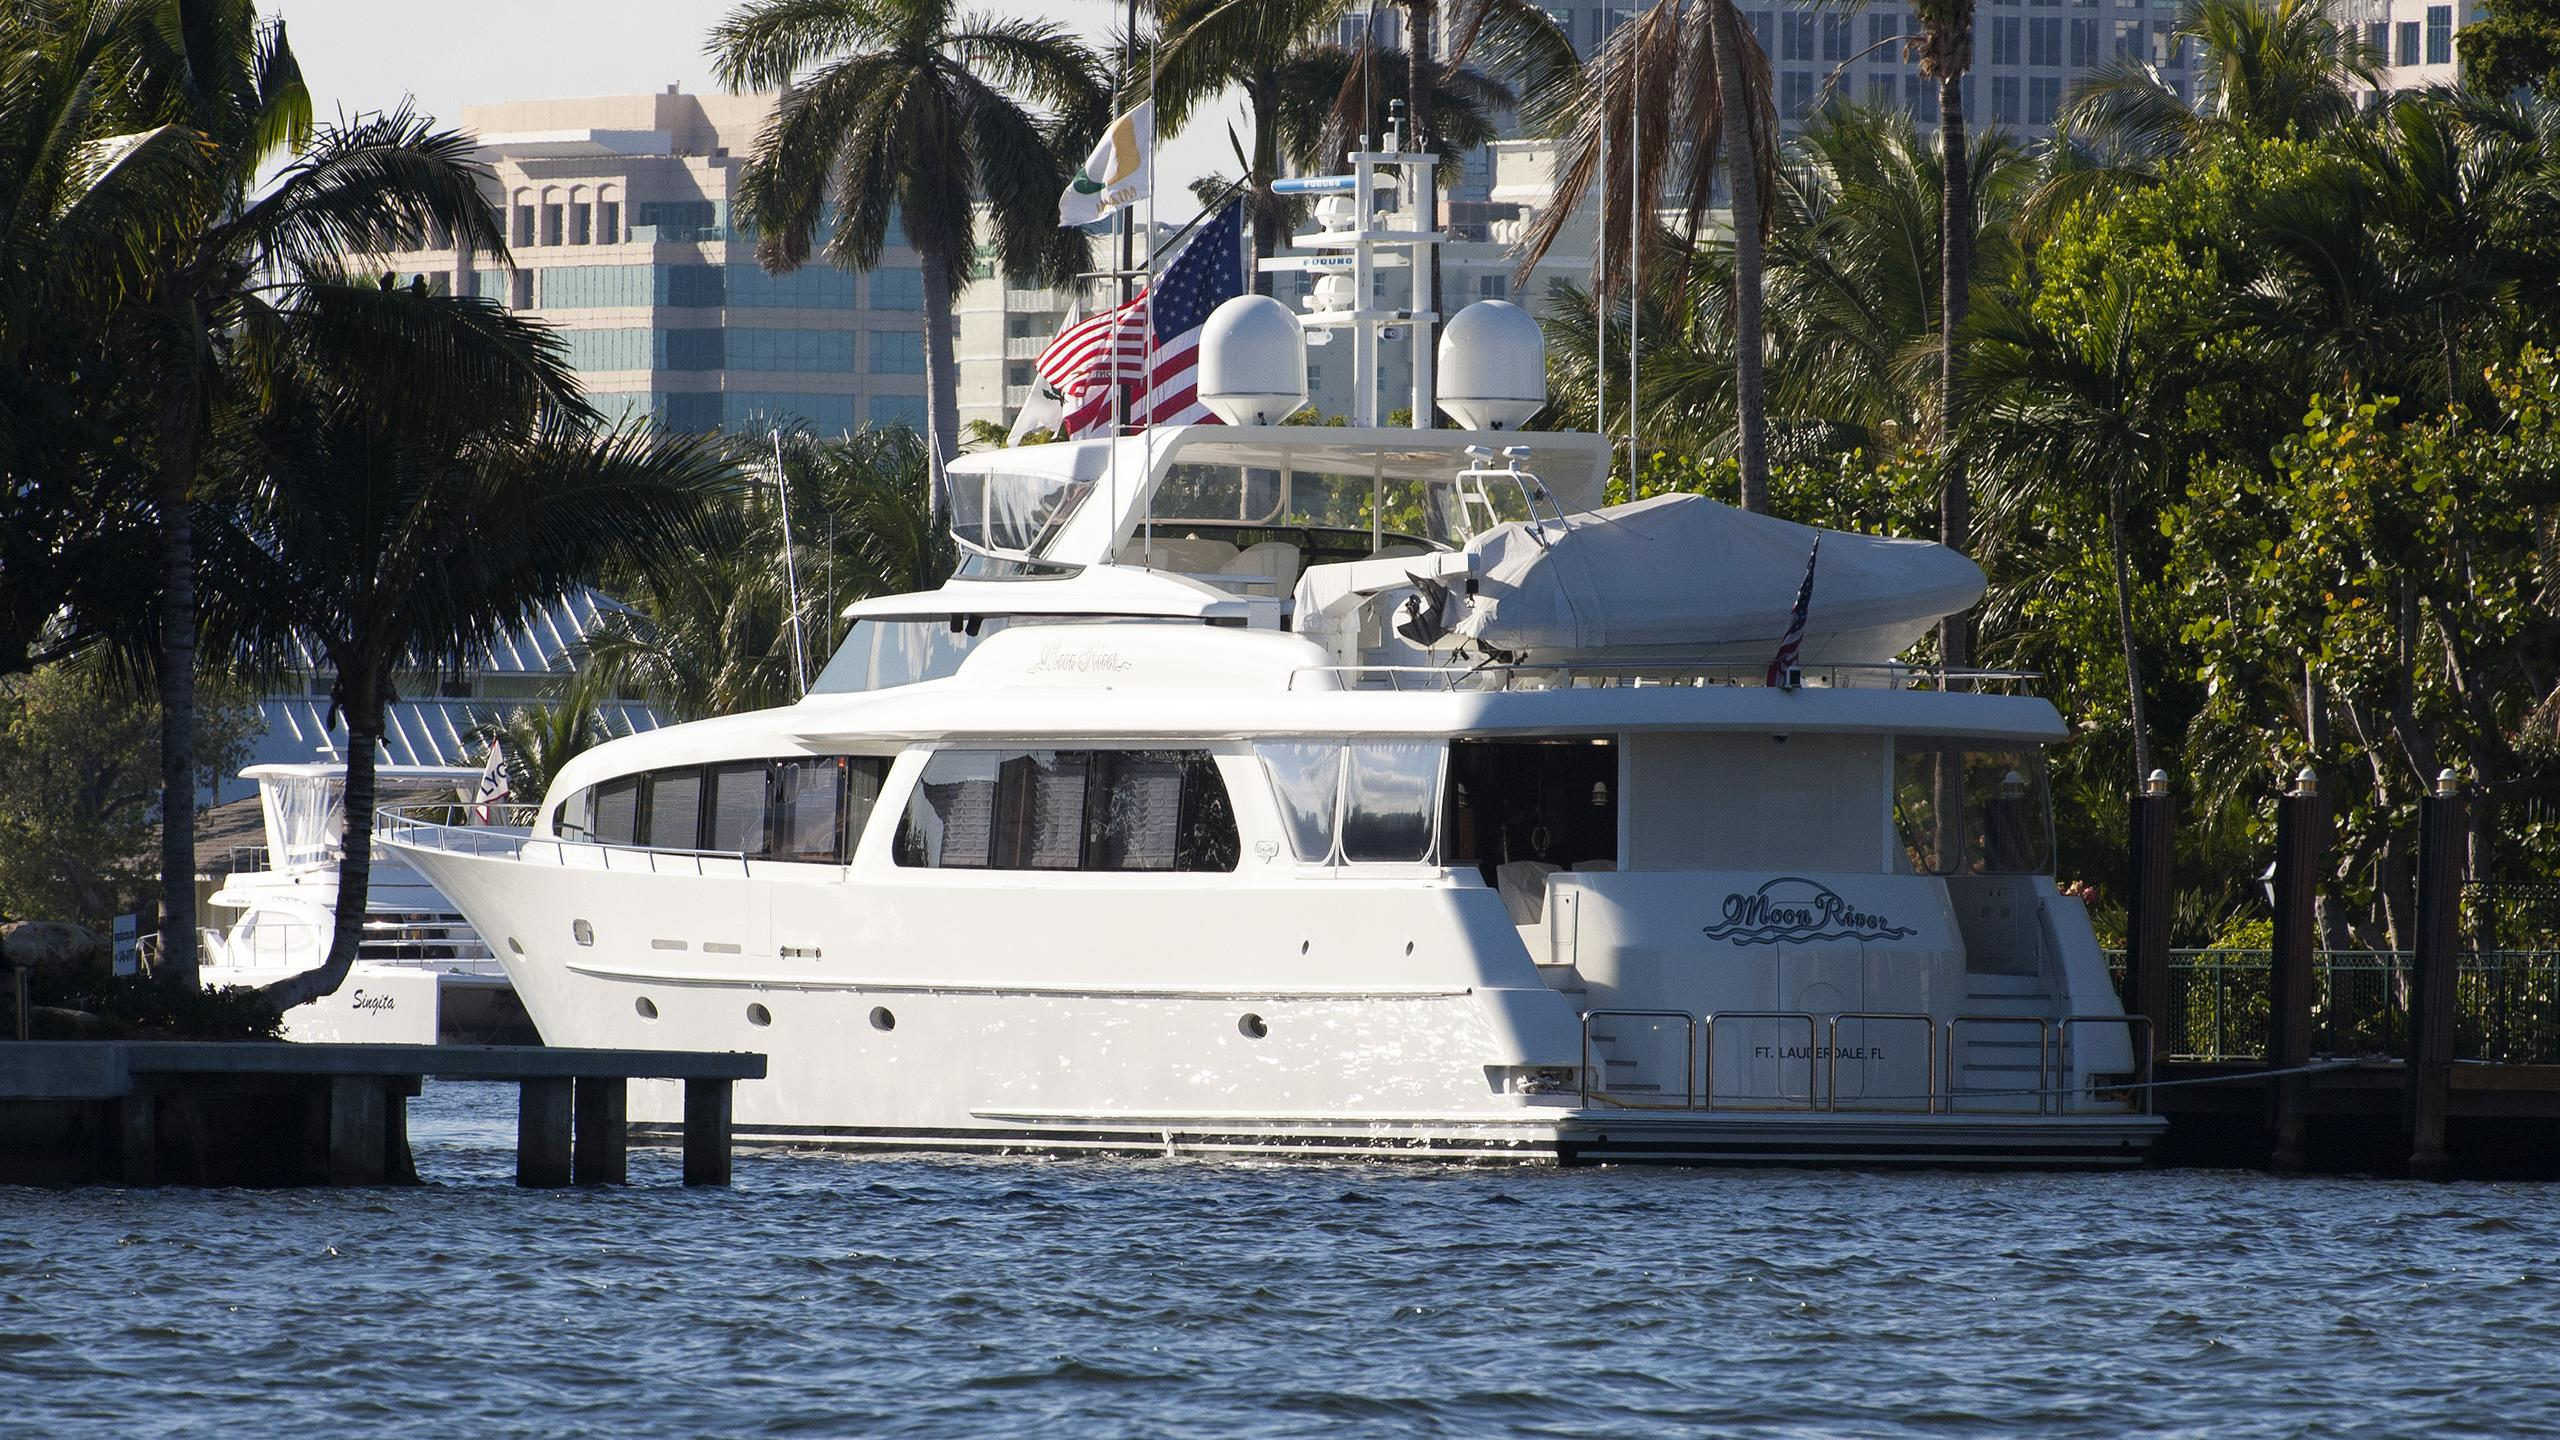 moon-river=motor-yacht-west-bay-sonship-103-2001-31m-rear-profile